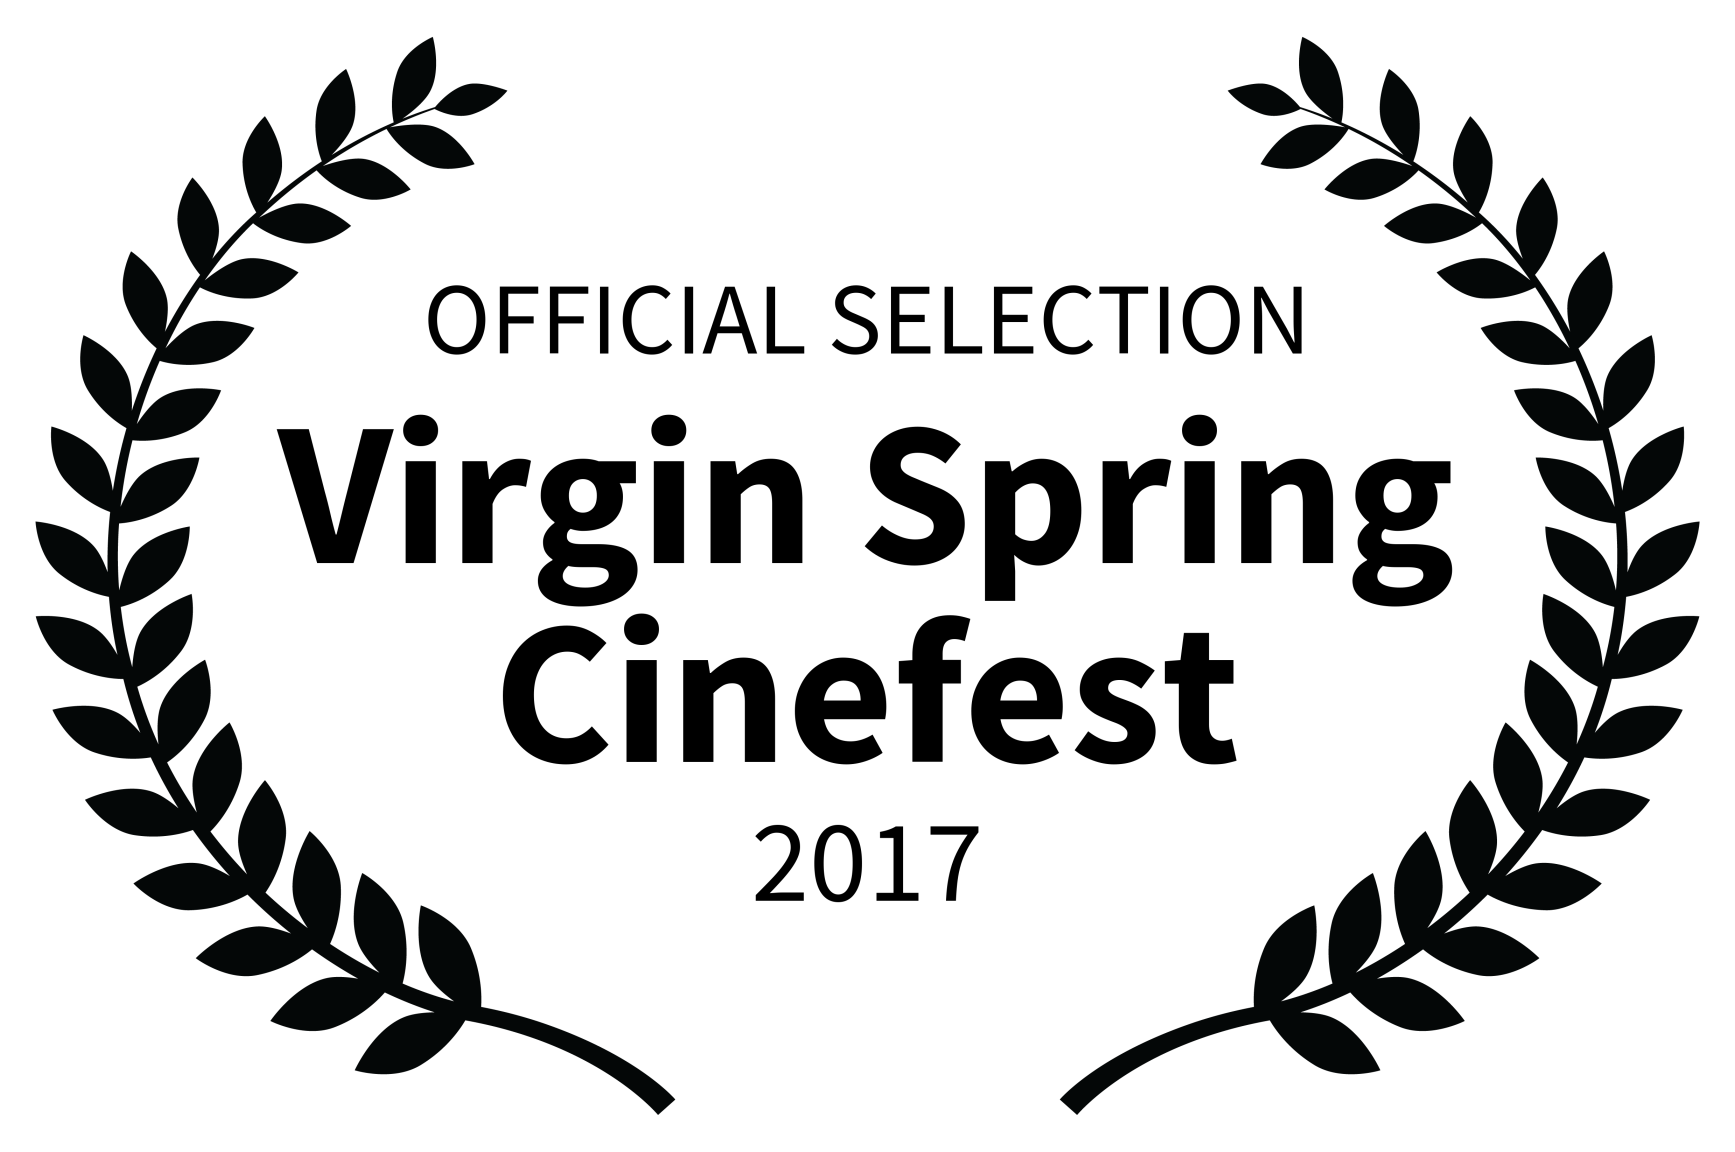 OFFICIAL SELECTION - Virgin Spring Cinef